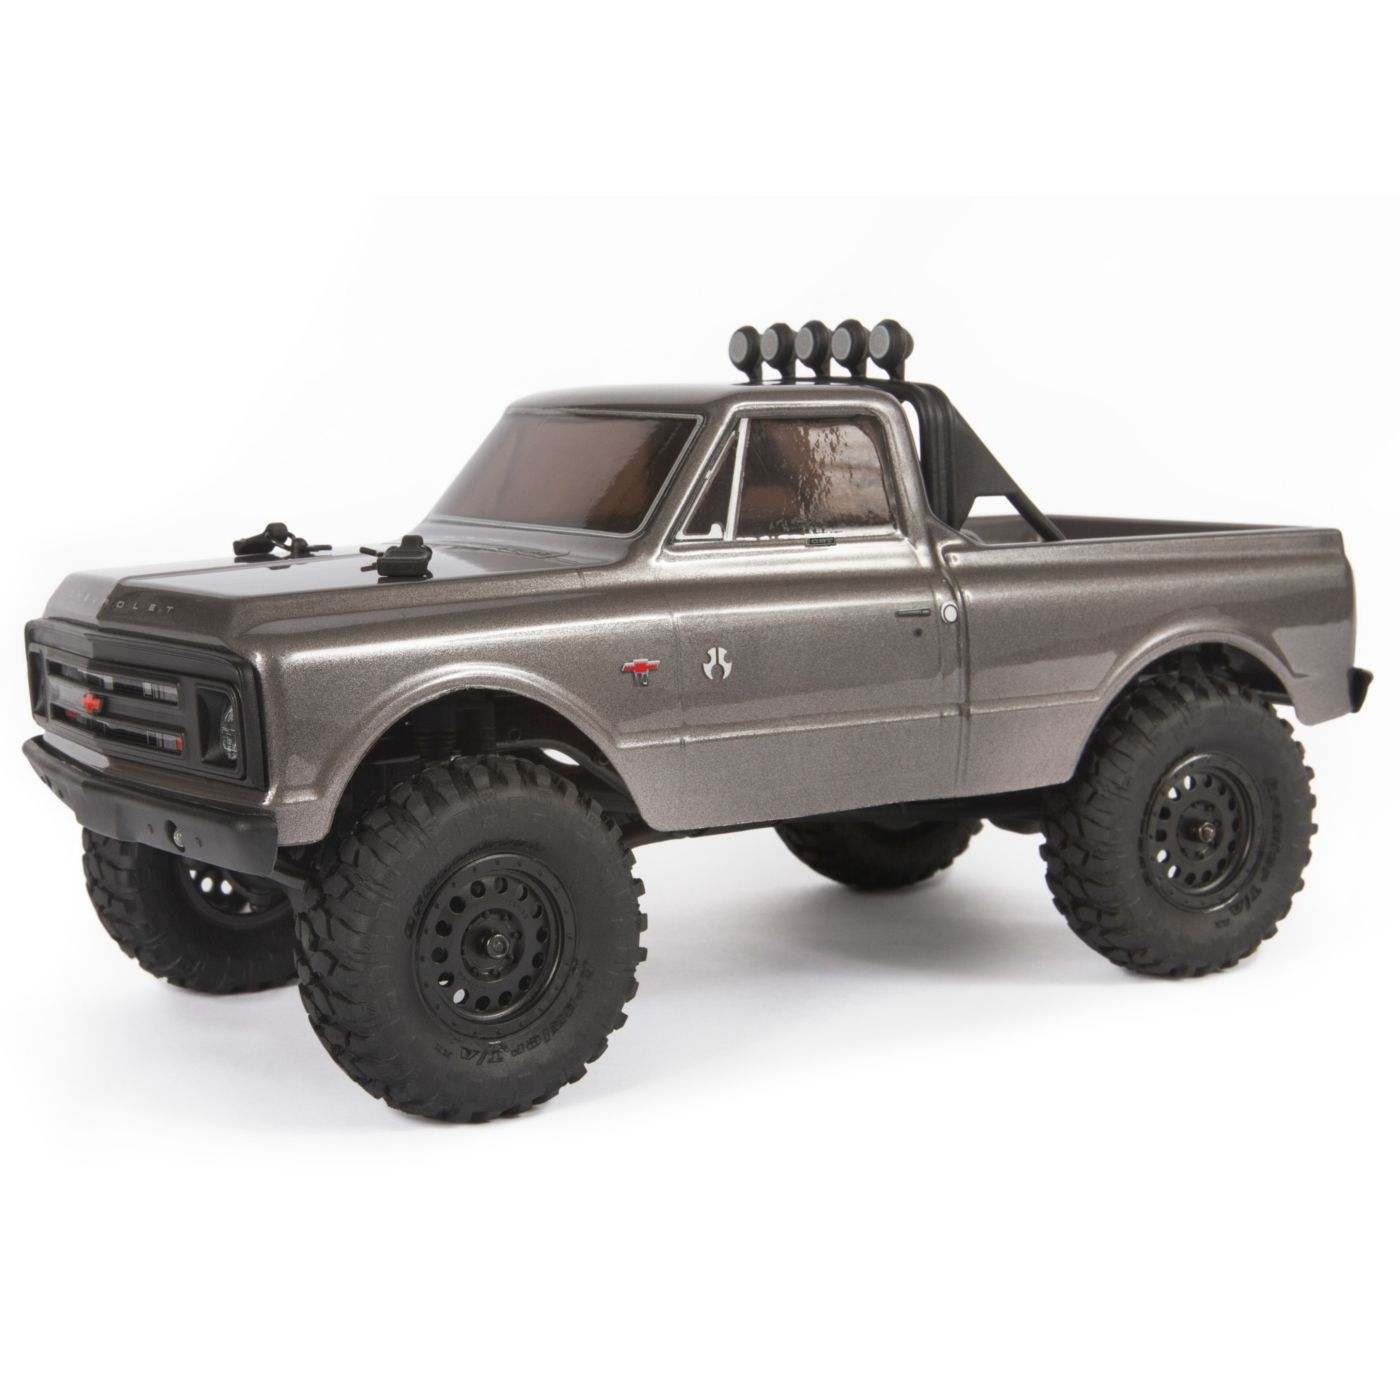 Axial Racing 1/24 SCX24 1967 Chevrolet C10 4WD Truck Brushed RTR, Silver